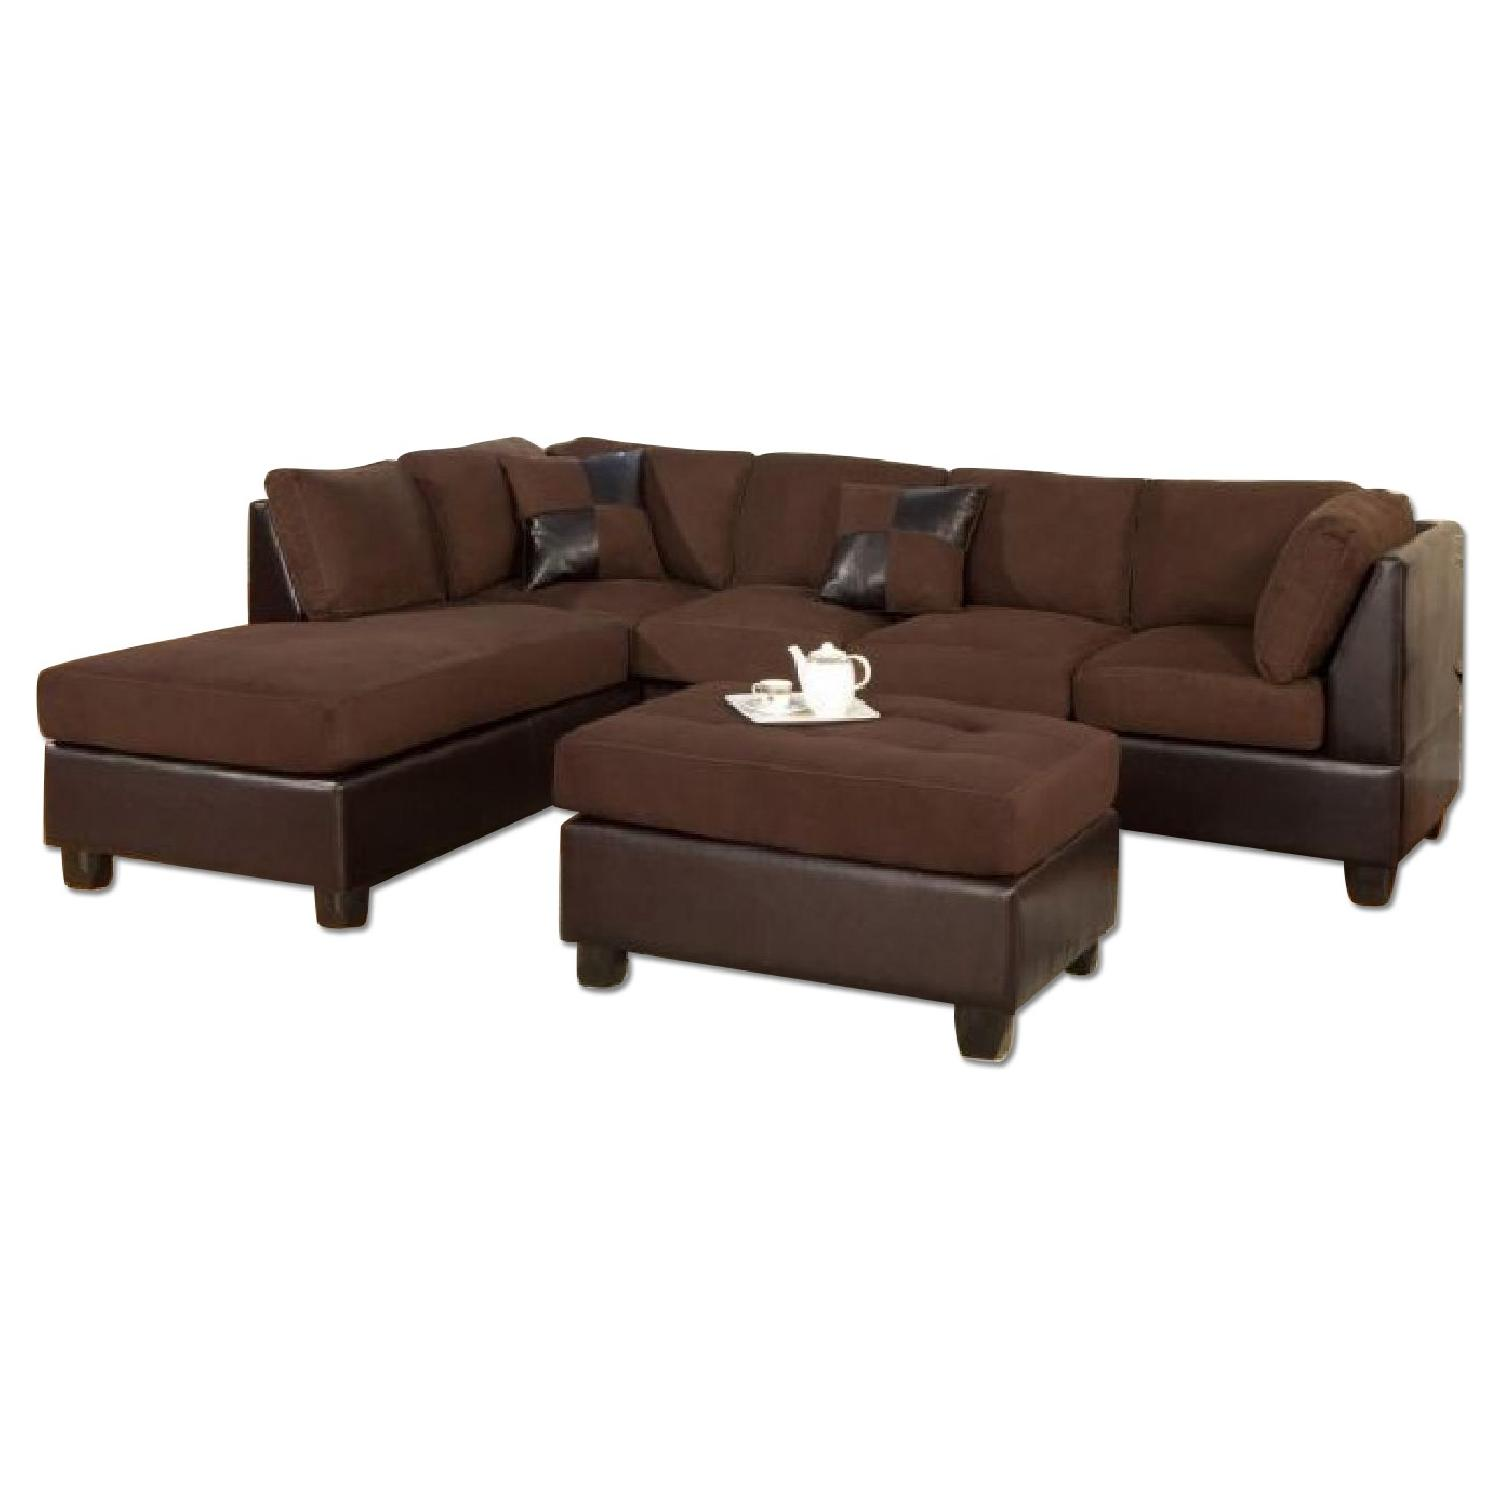 3 piece microfiber sectional sofa with chaise sleeper matching recliner bobkona claudia bonded leather 4 and aptdeco